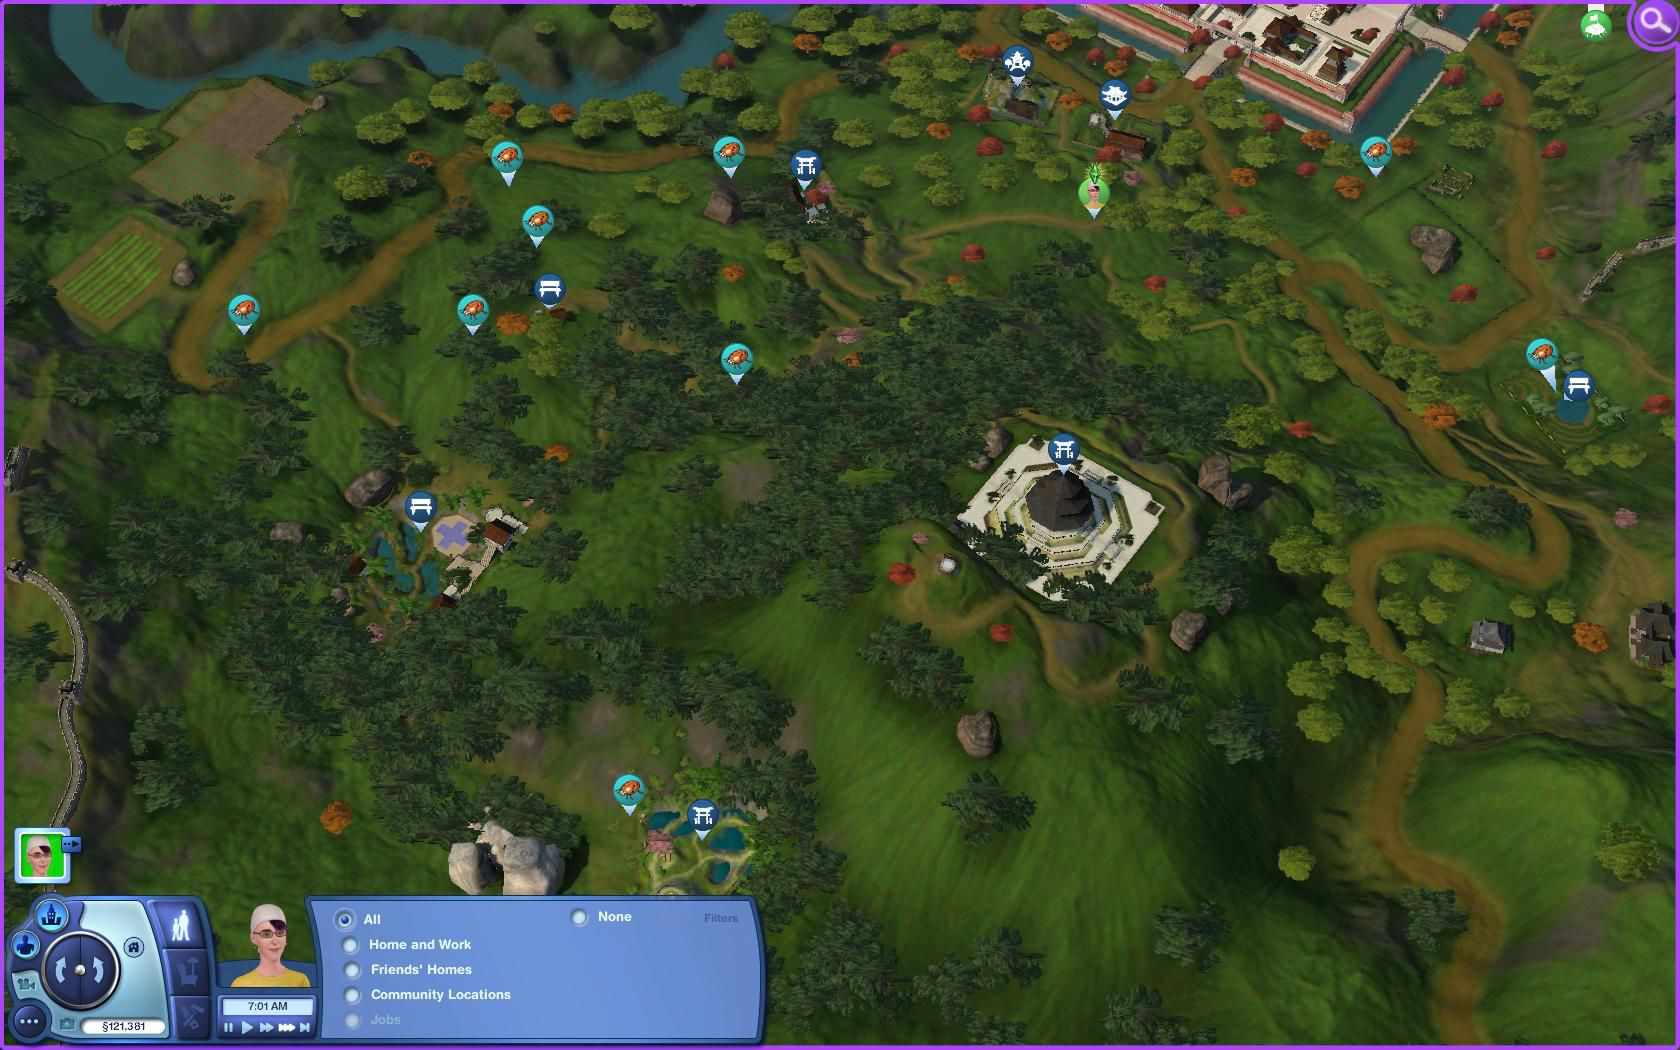 The sims 3 world adventures collecting guide maps the sims 3 collecting guide gumiabroncs Image collections